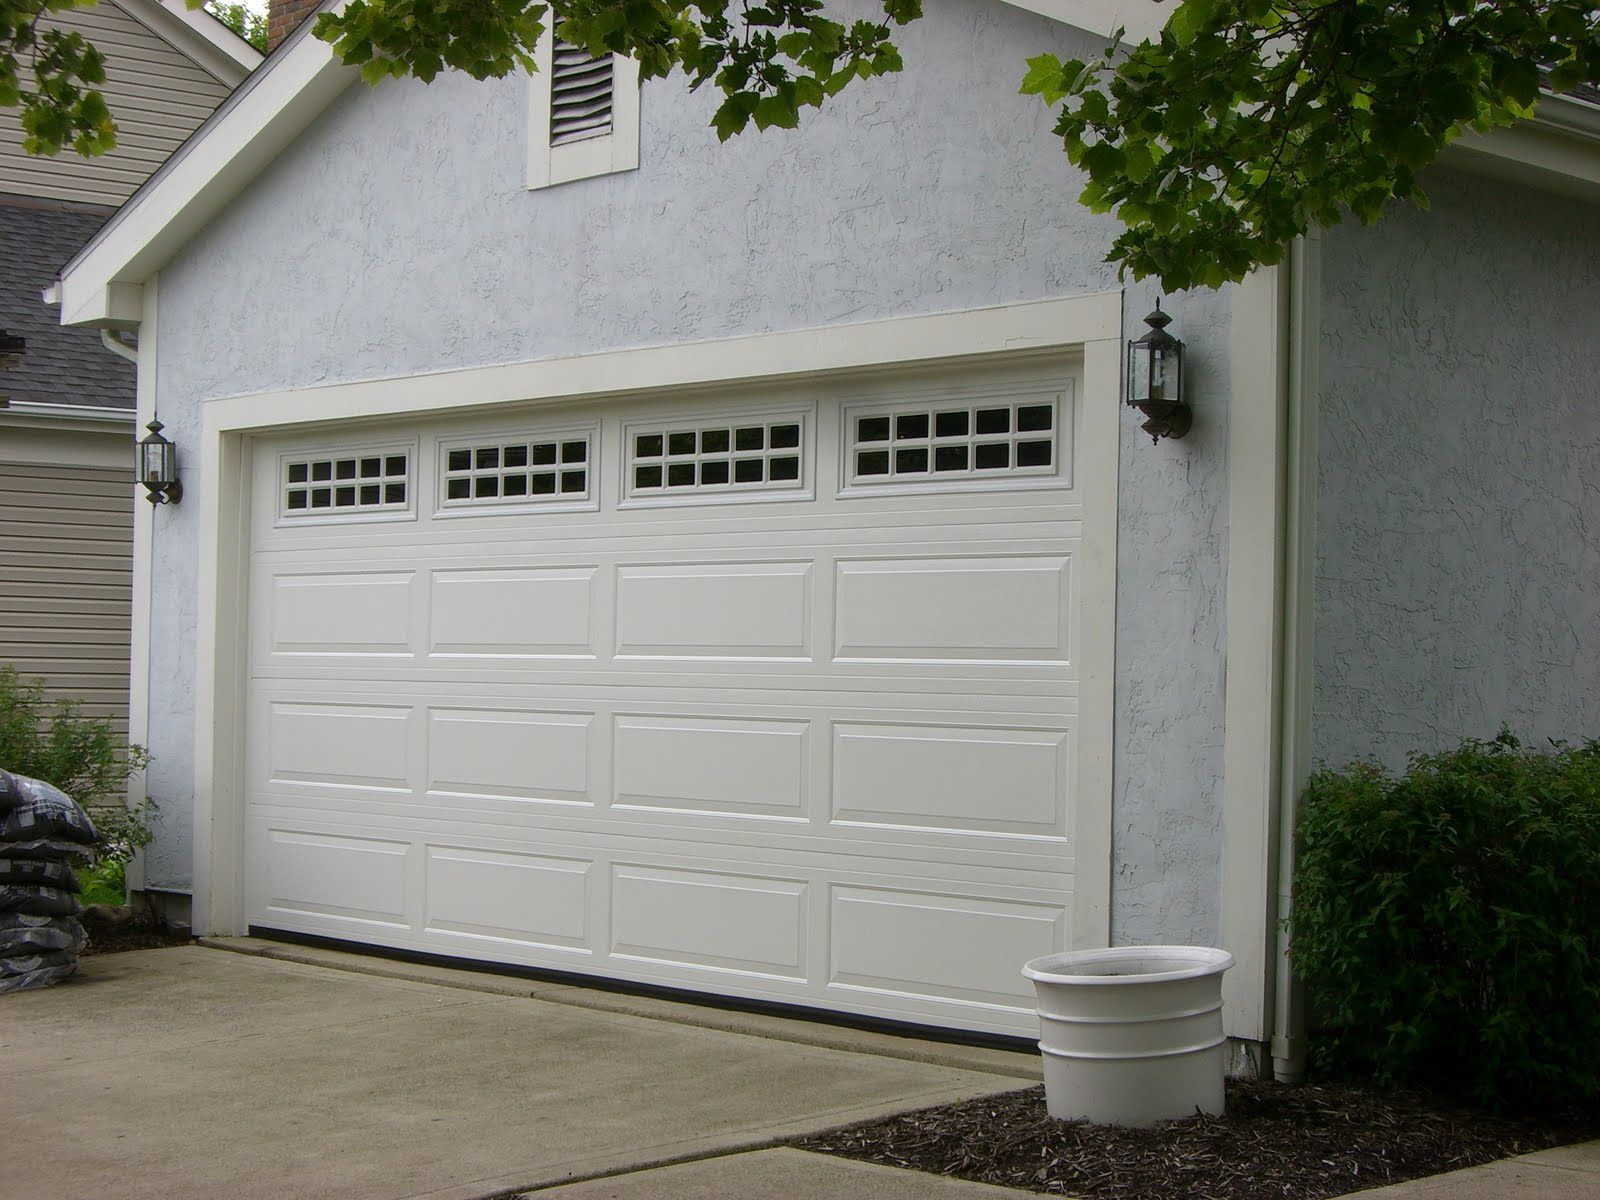 Ranch Panel Doors Are A Little Different That Raised Panel Doors Click To Find Out More About Them Garage Doors Raised Panel Doors Garage Door Panels